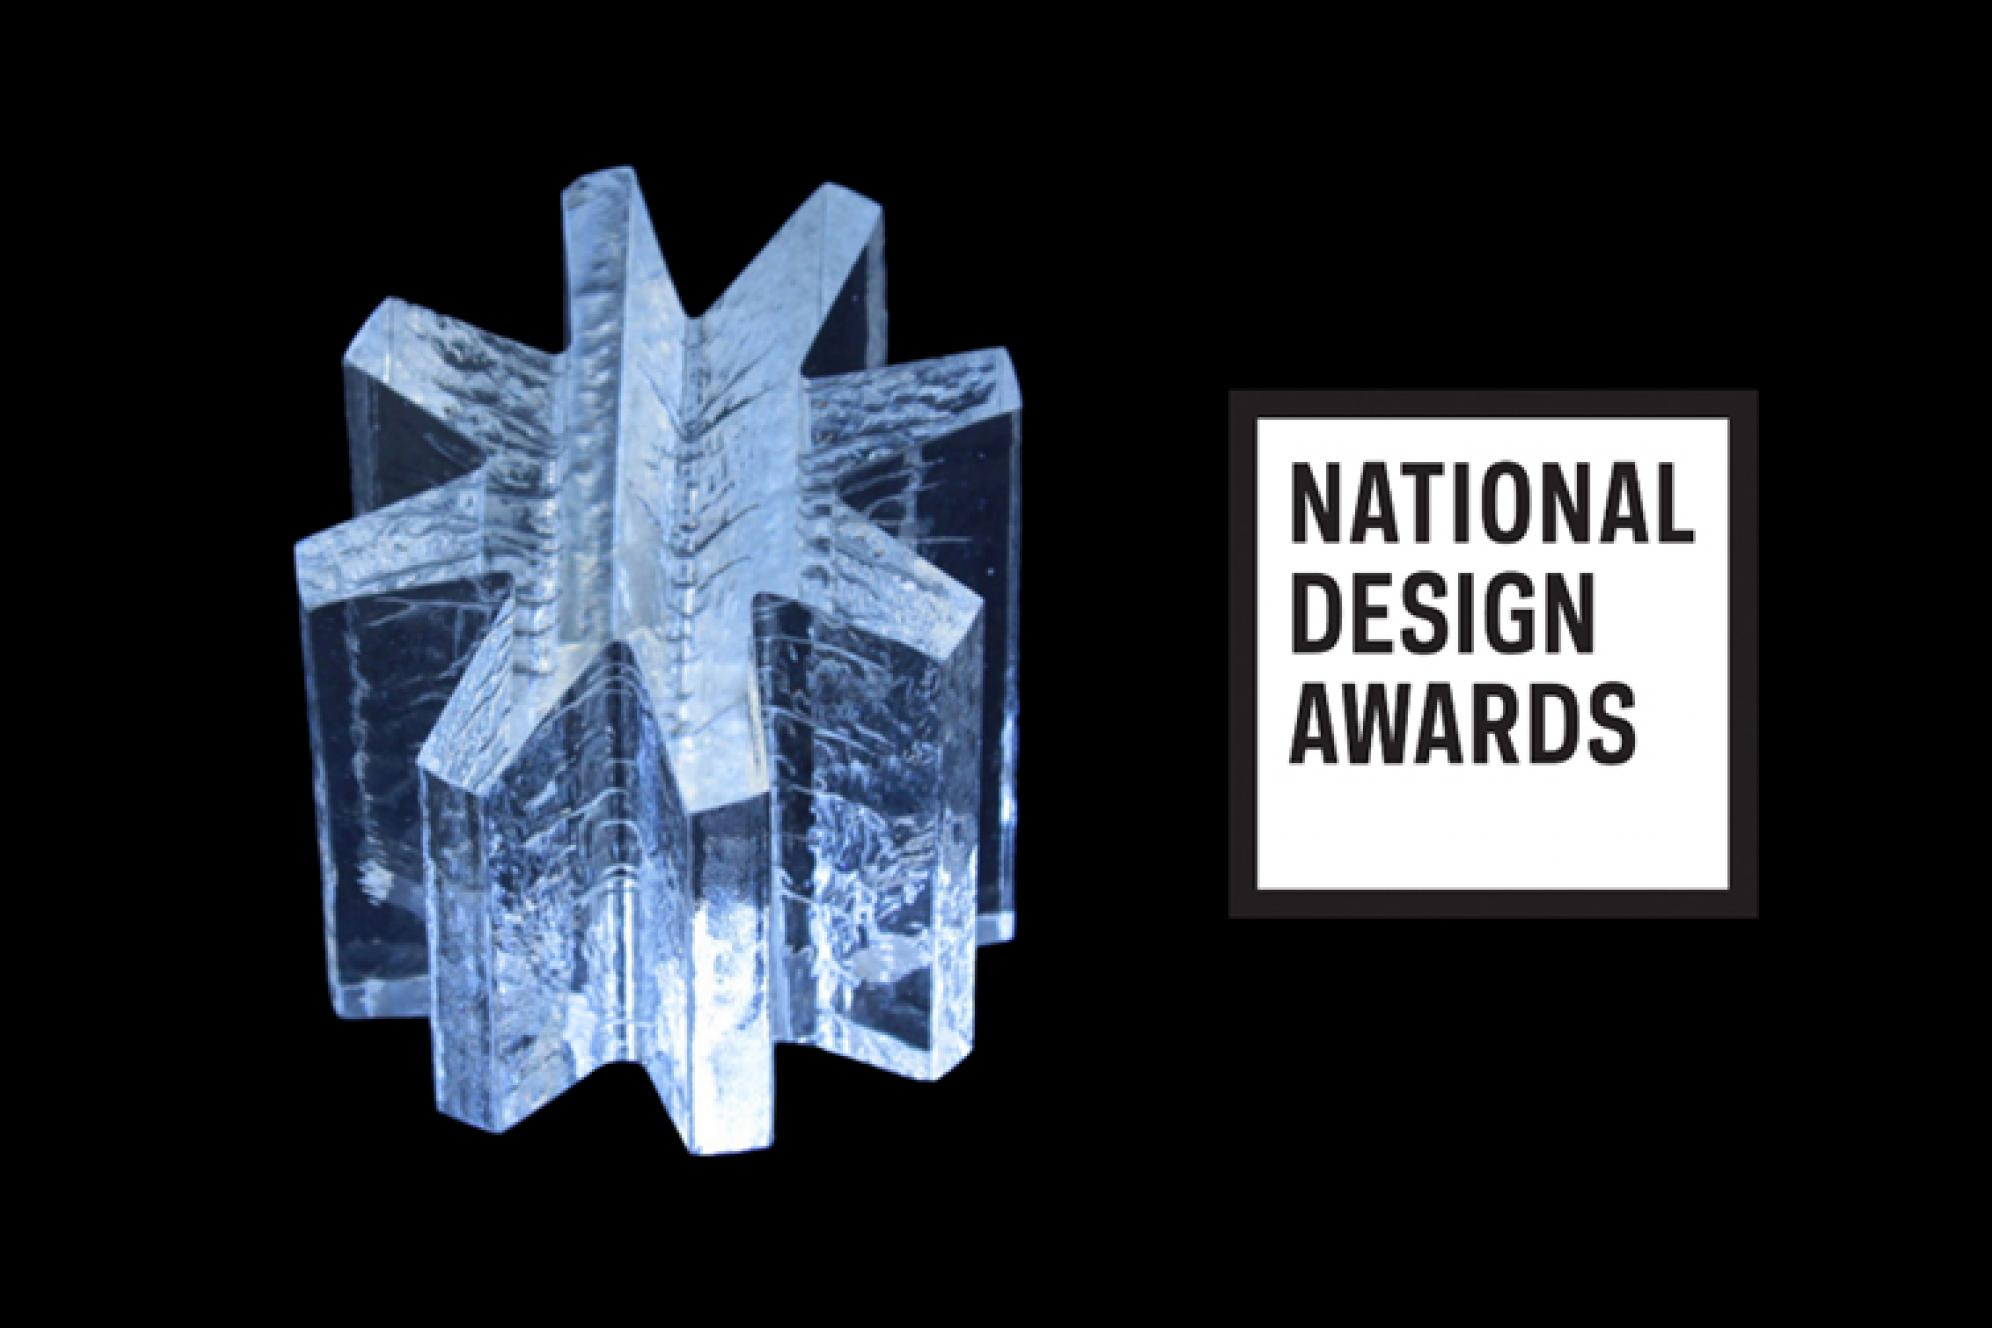 Photo: National Design Award Photo